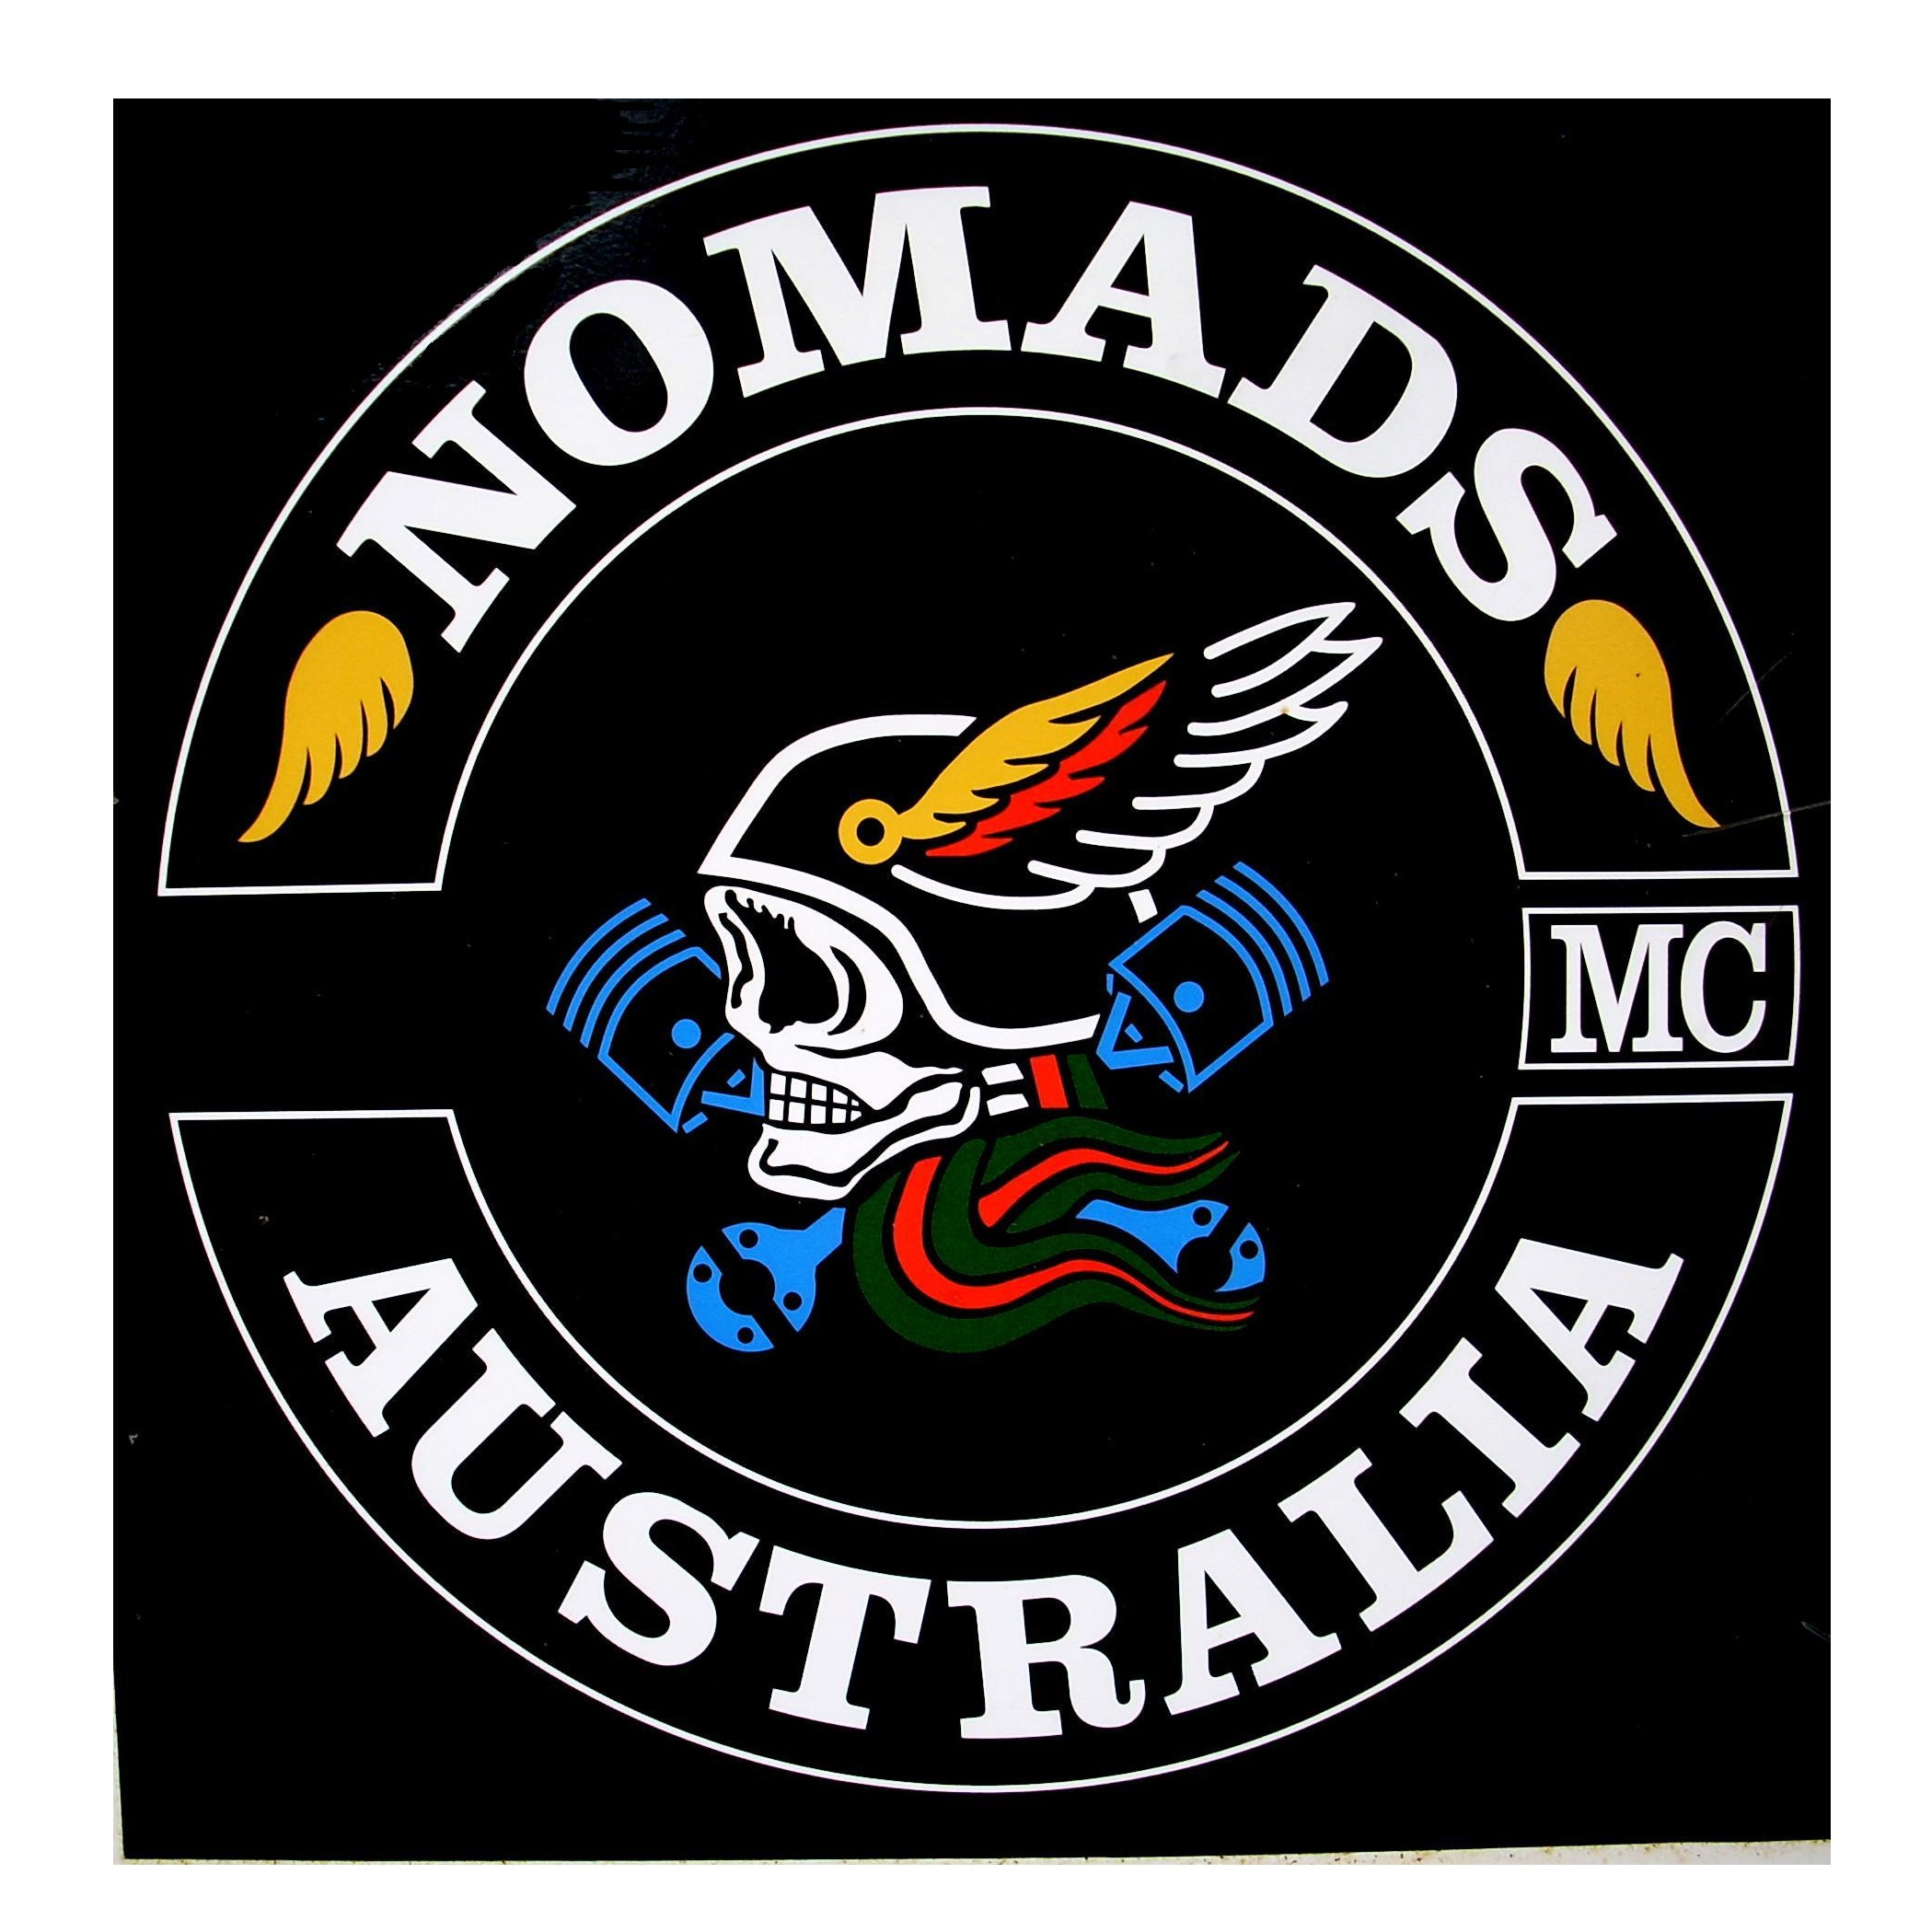 Nomads mc Logo Nomads Australia mc Logo by